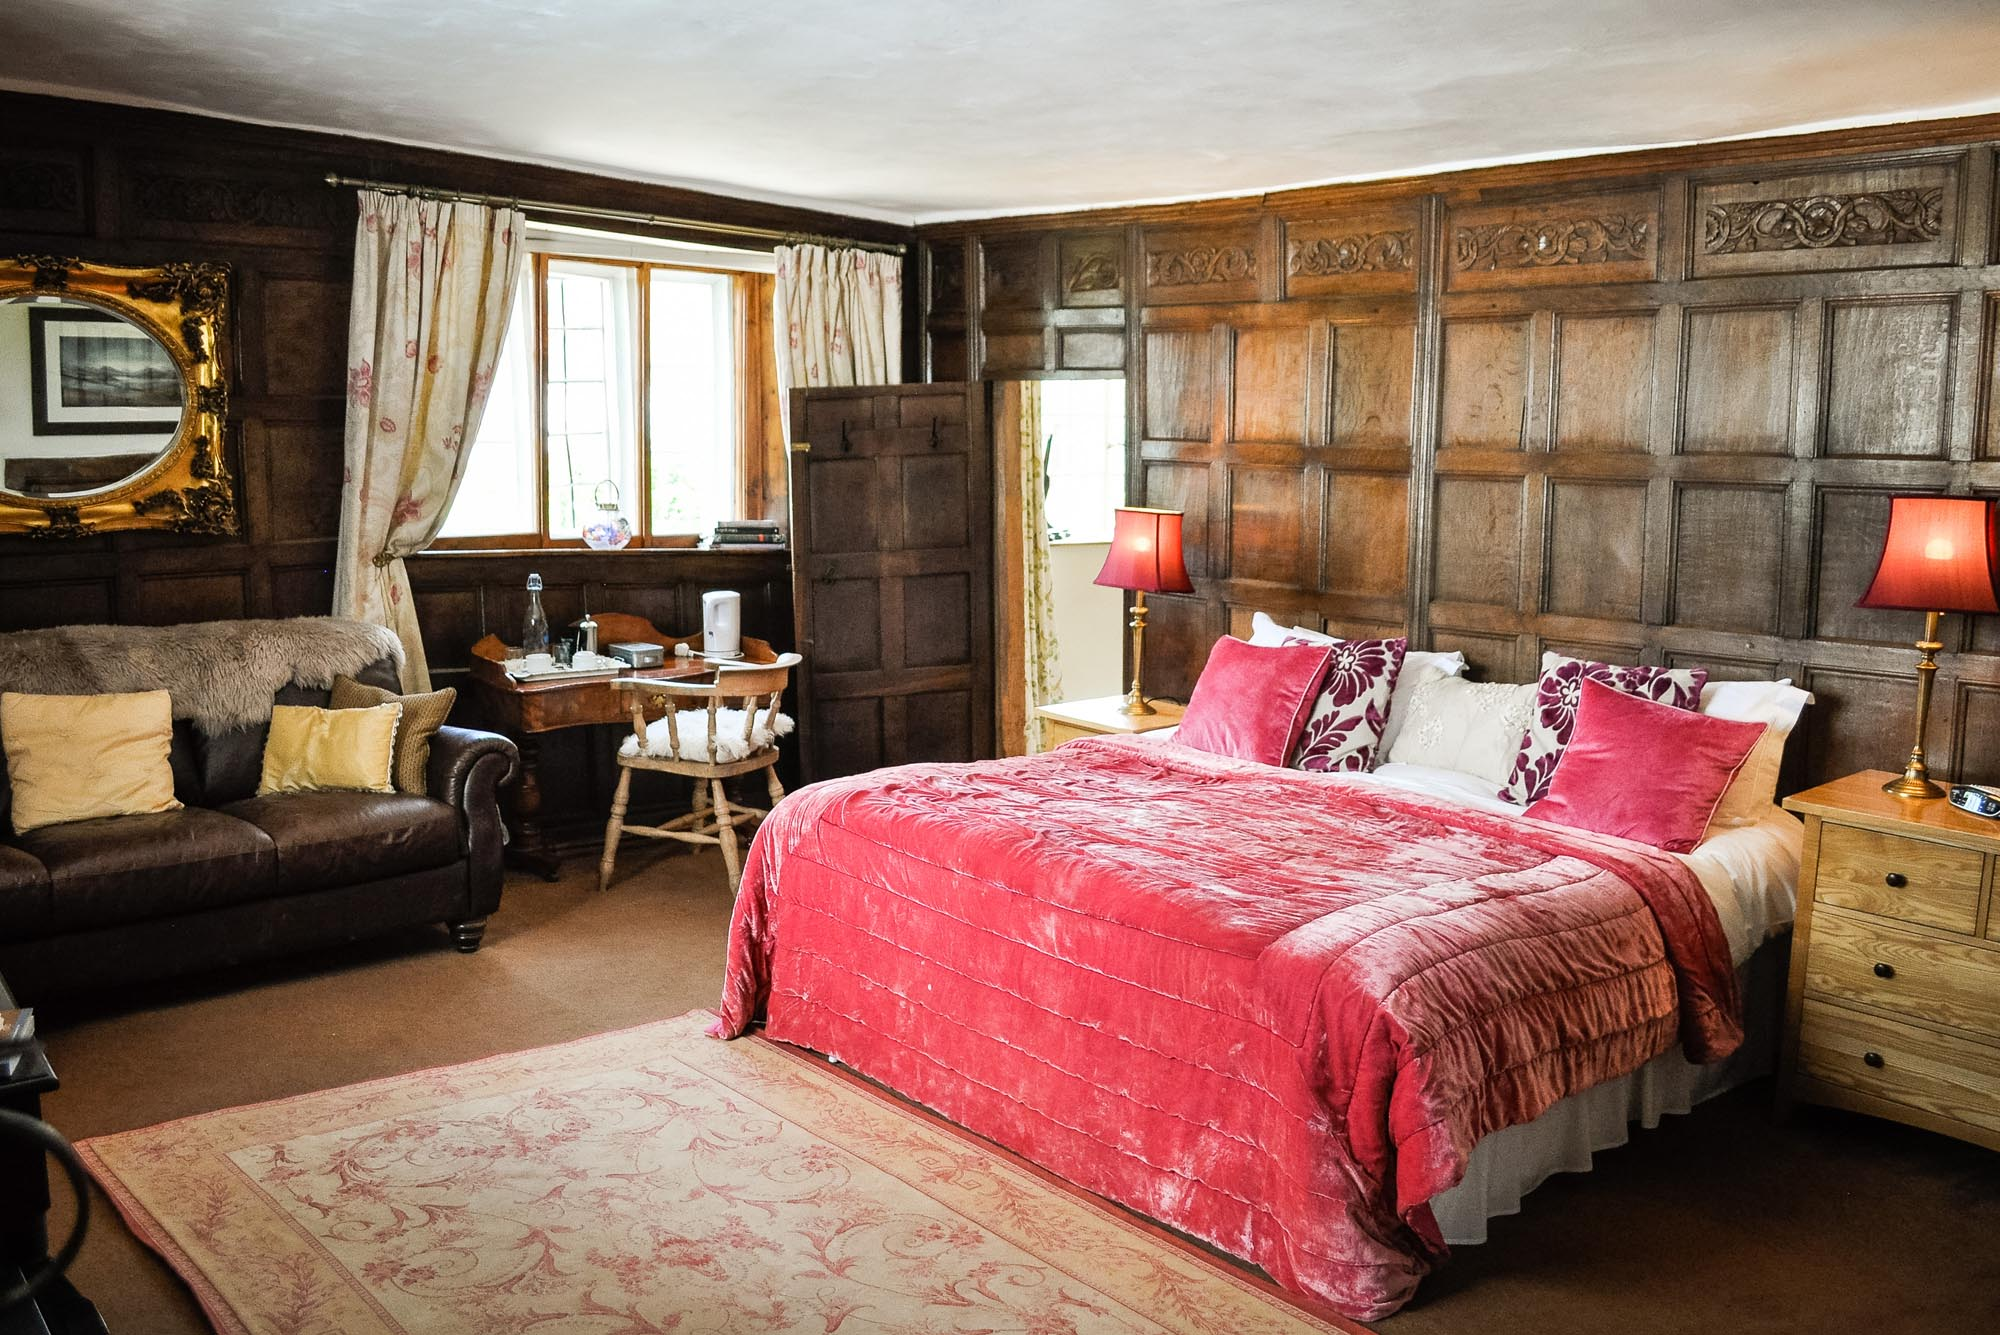 Accommodation - We offer a variety of places to stay, from B&B to self catering & glamping